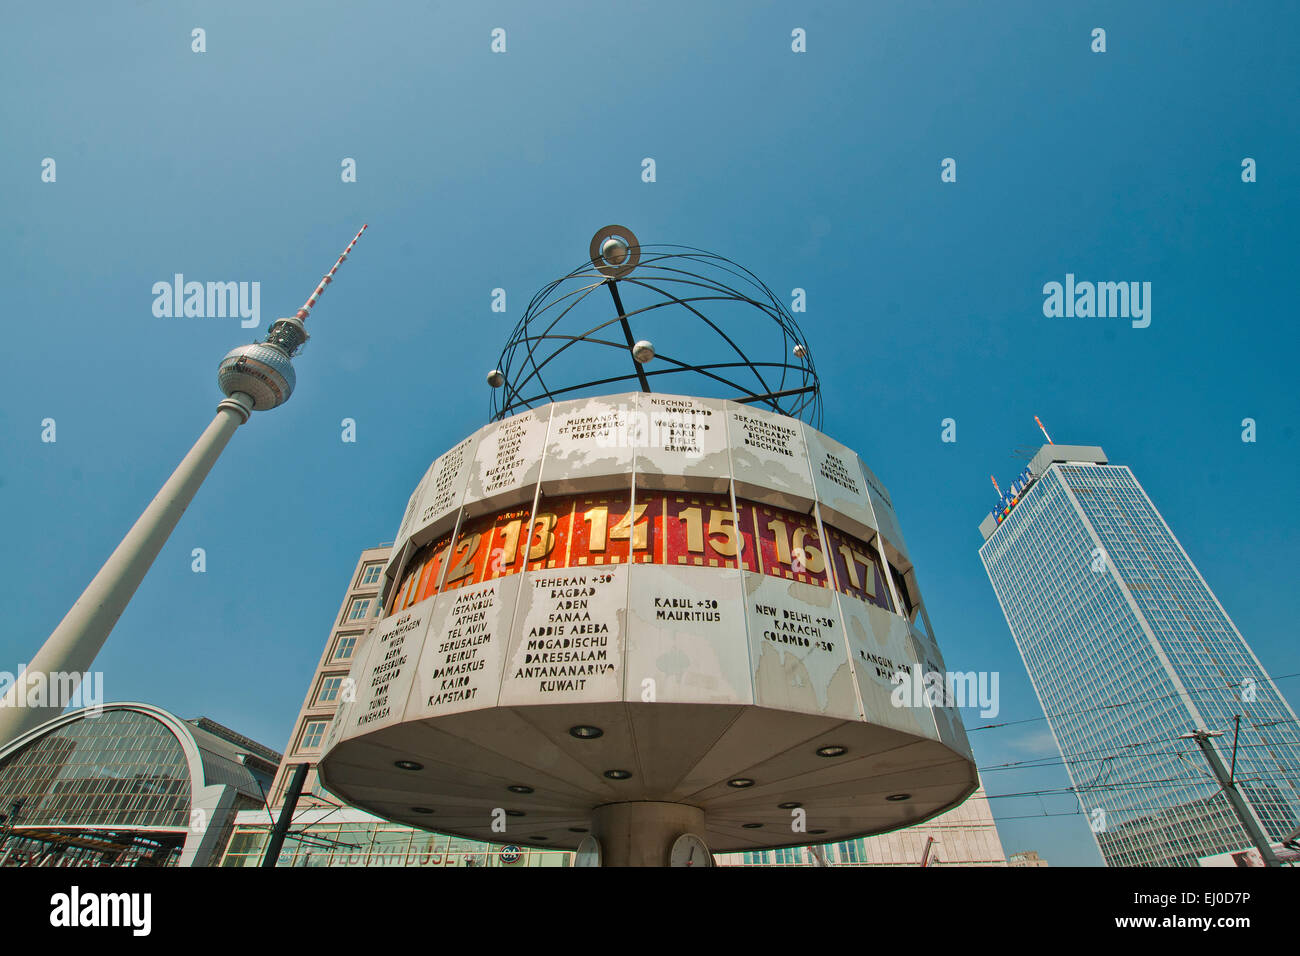 Germany, Berlin, monument, Urania, world time clock, clock, world time, Urania, Alexander place, block of flats, Stock Photo